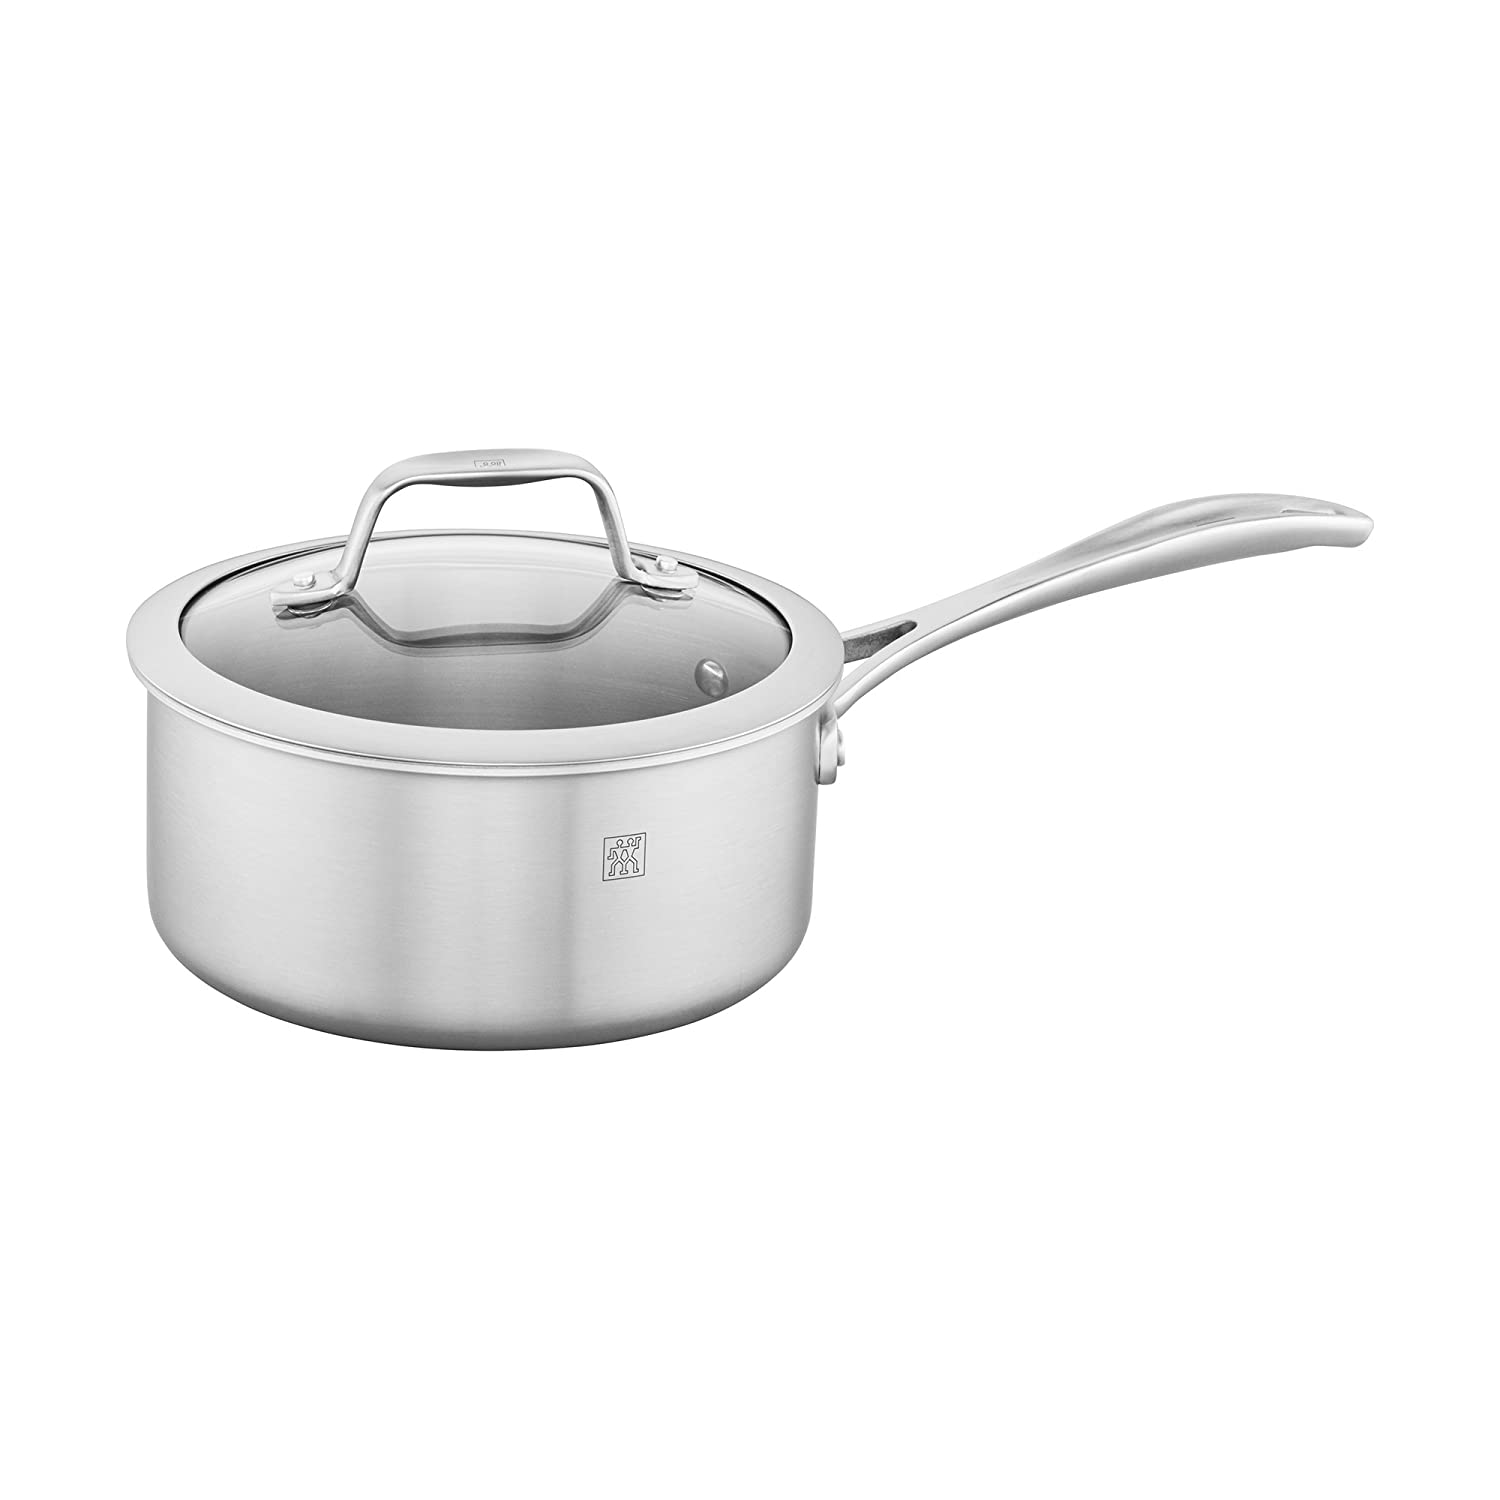 ZWILLING J.A. Henckels Zwilling spirit 3-ply 2-qt stainless steel saucepan, 5 Pound